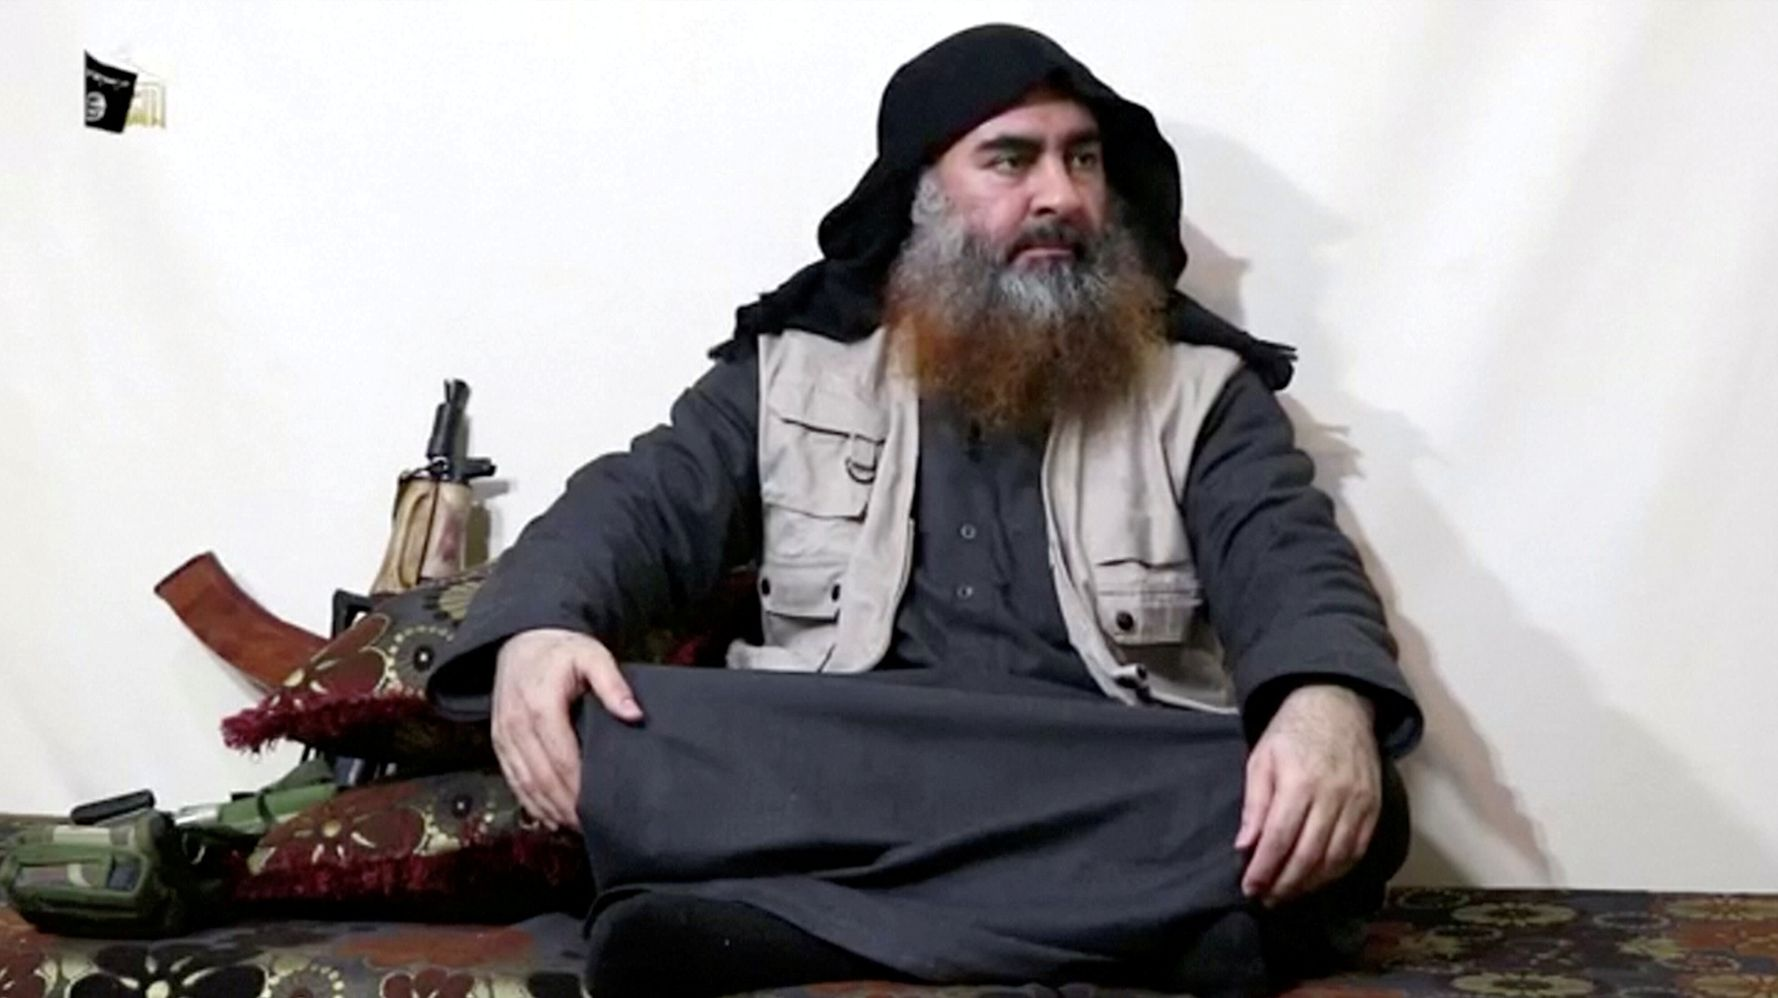 Westlake Legal Group 5db51690210000eb2c34b243 ISIS Leader Abu Bakr al-Baghdadi Reportedly Targeted In U.S. Military Operation